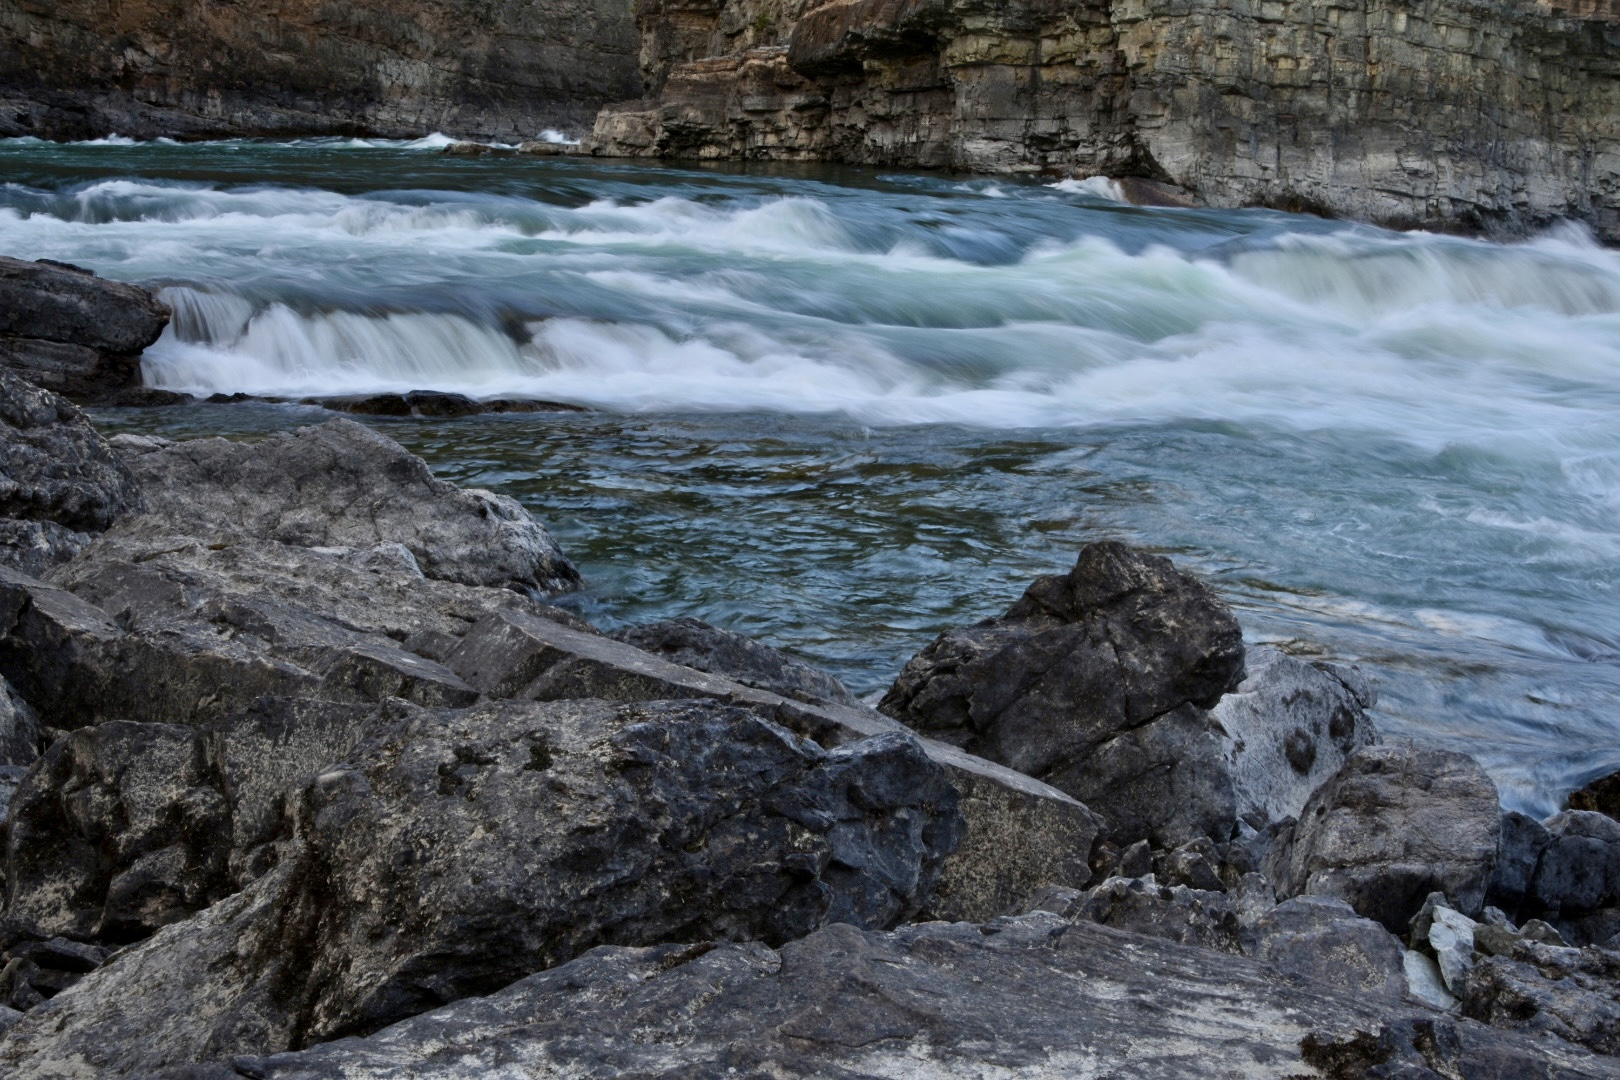 Road: Dry Falls, Grunge Music and the Kootenay River